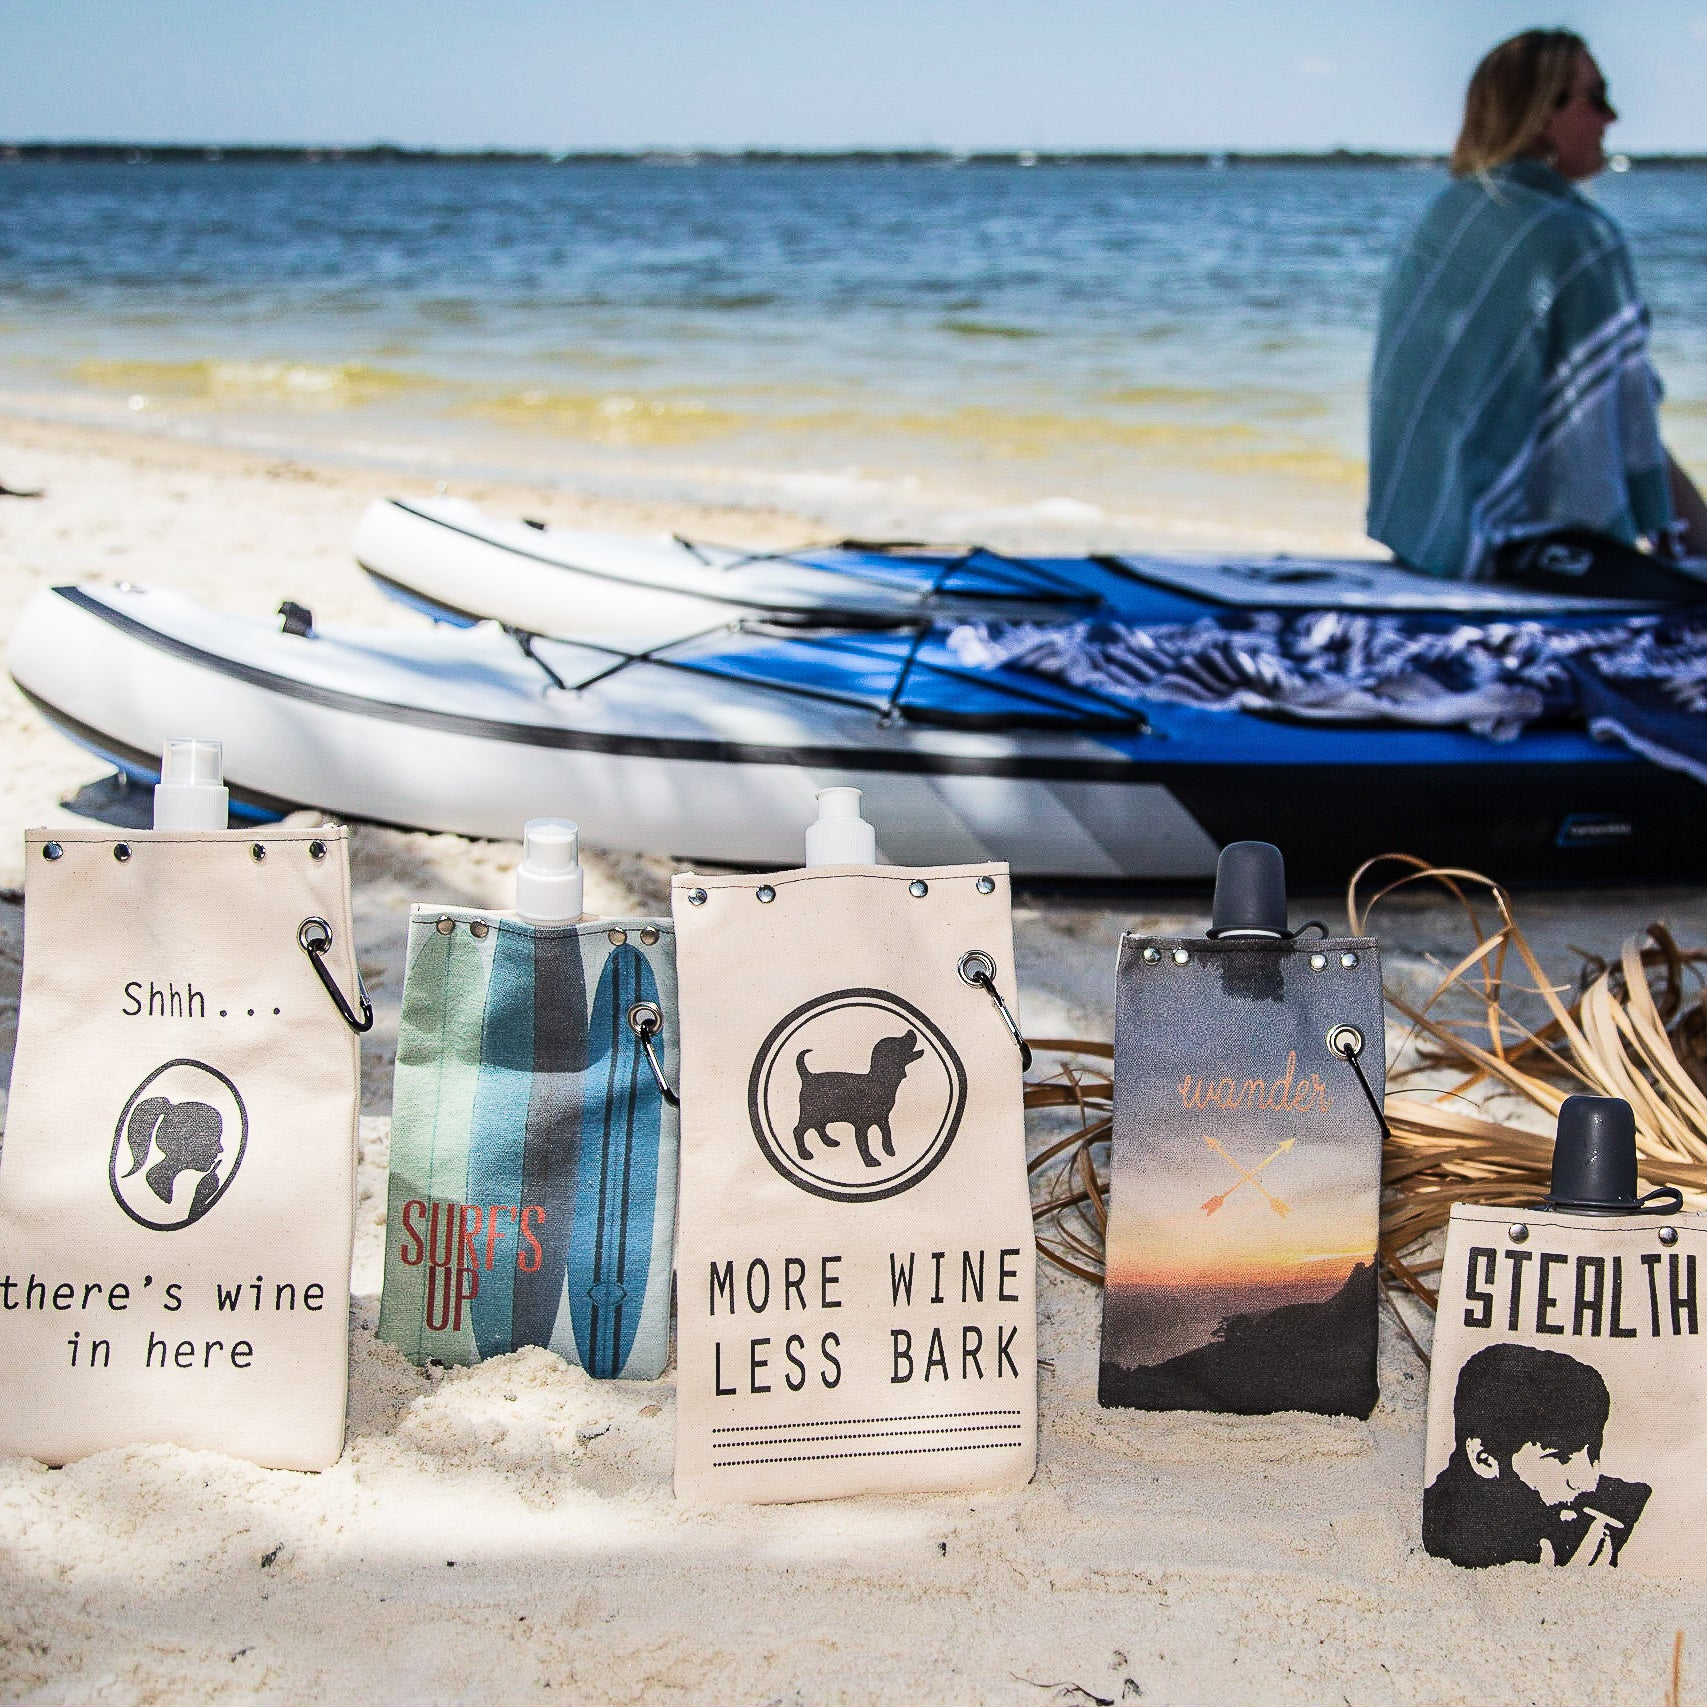 flasks by paddleboards on beach